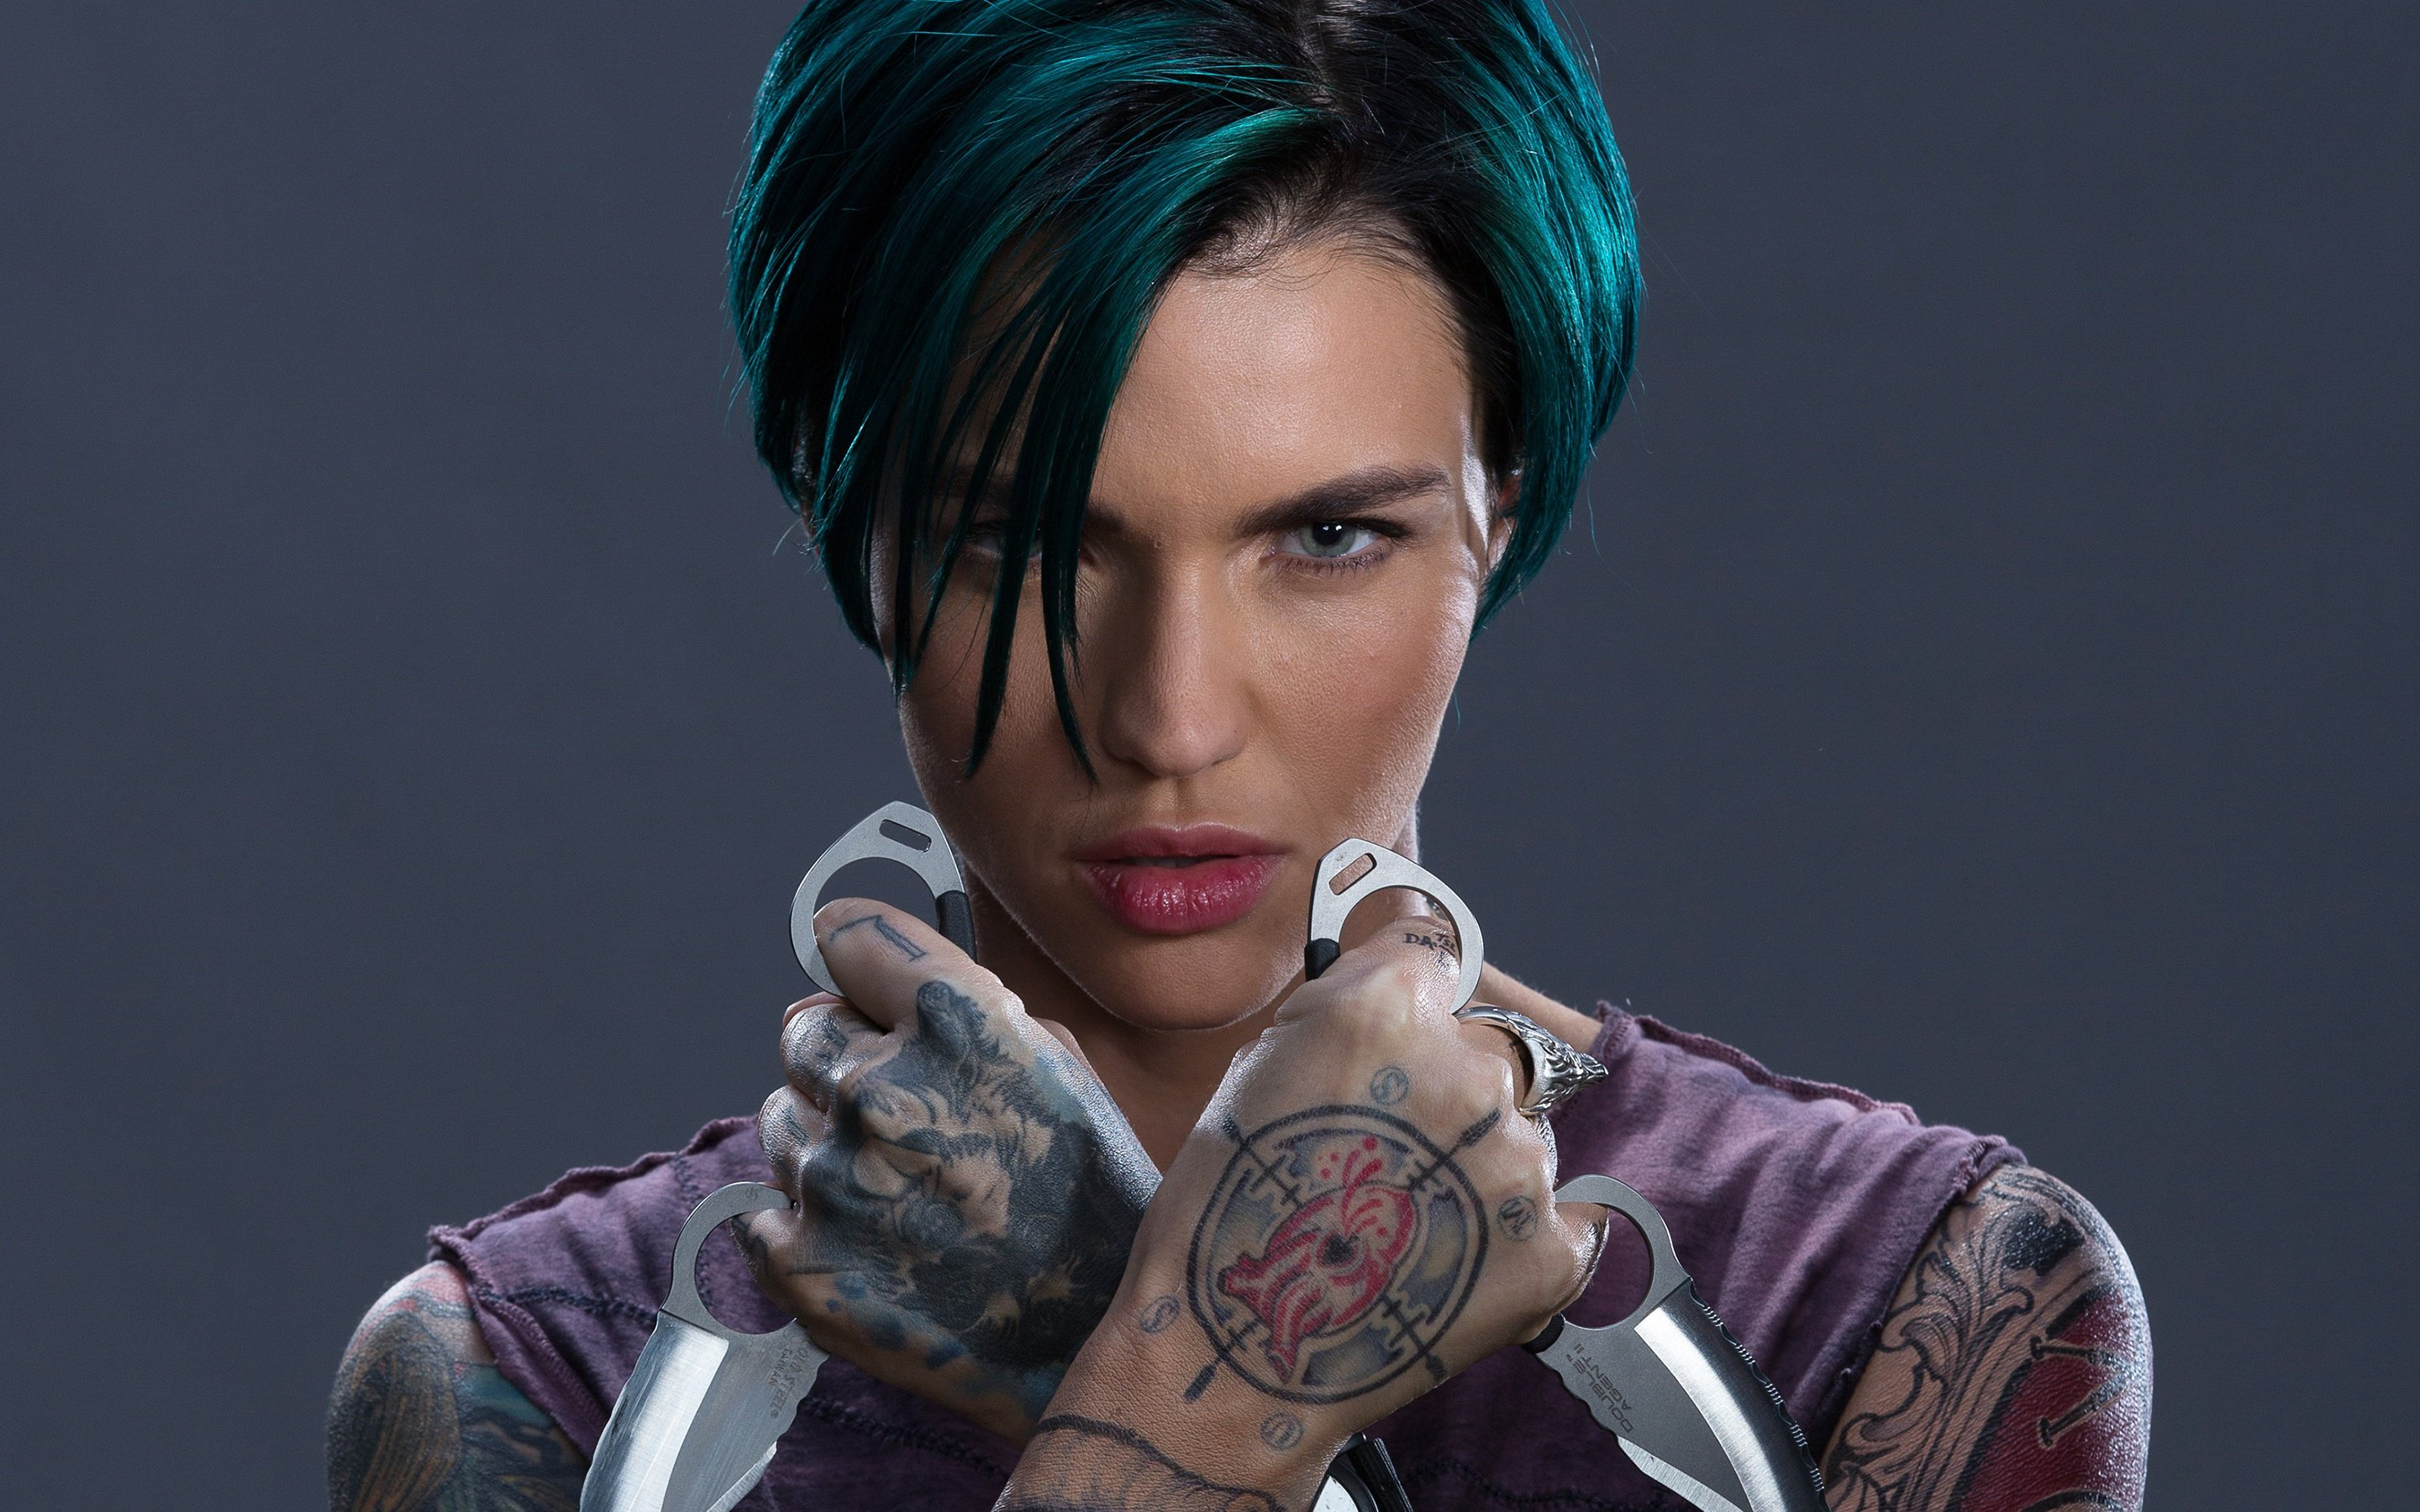 Free Ruby Rose high quality wallpaper ID:132442 for hd 2880x1800 PC